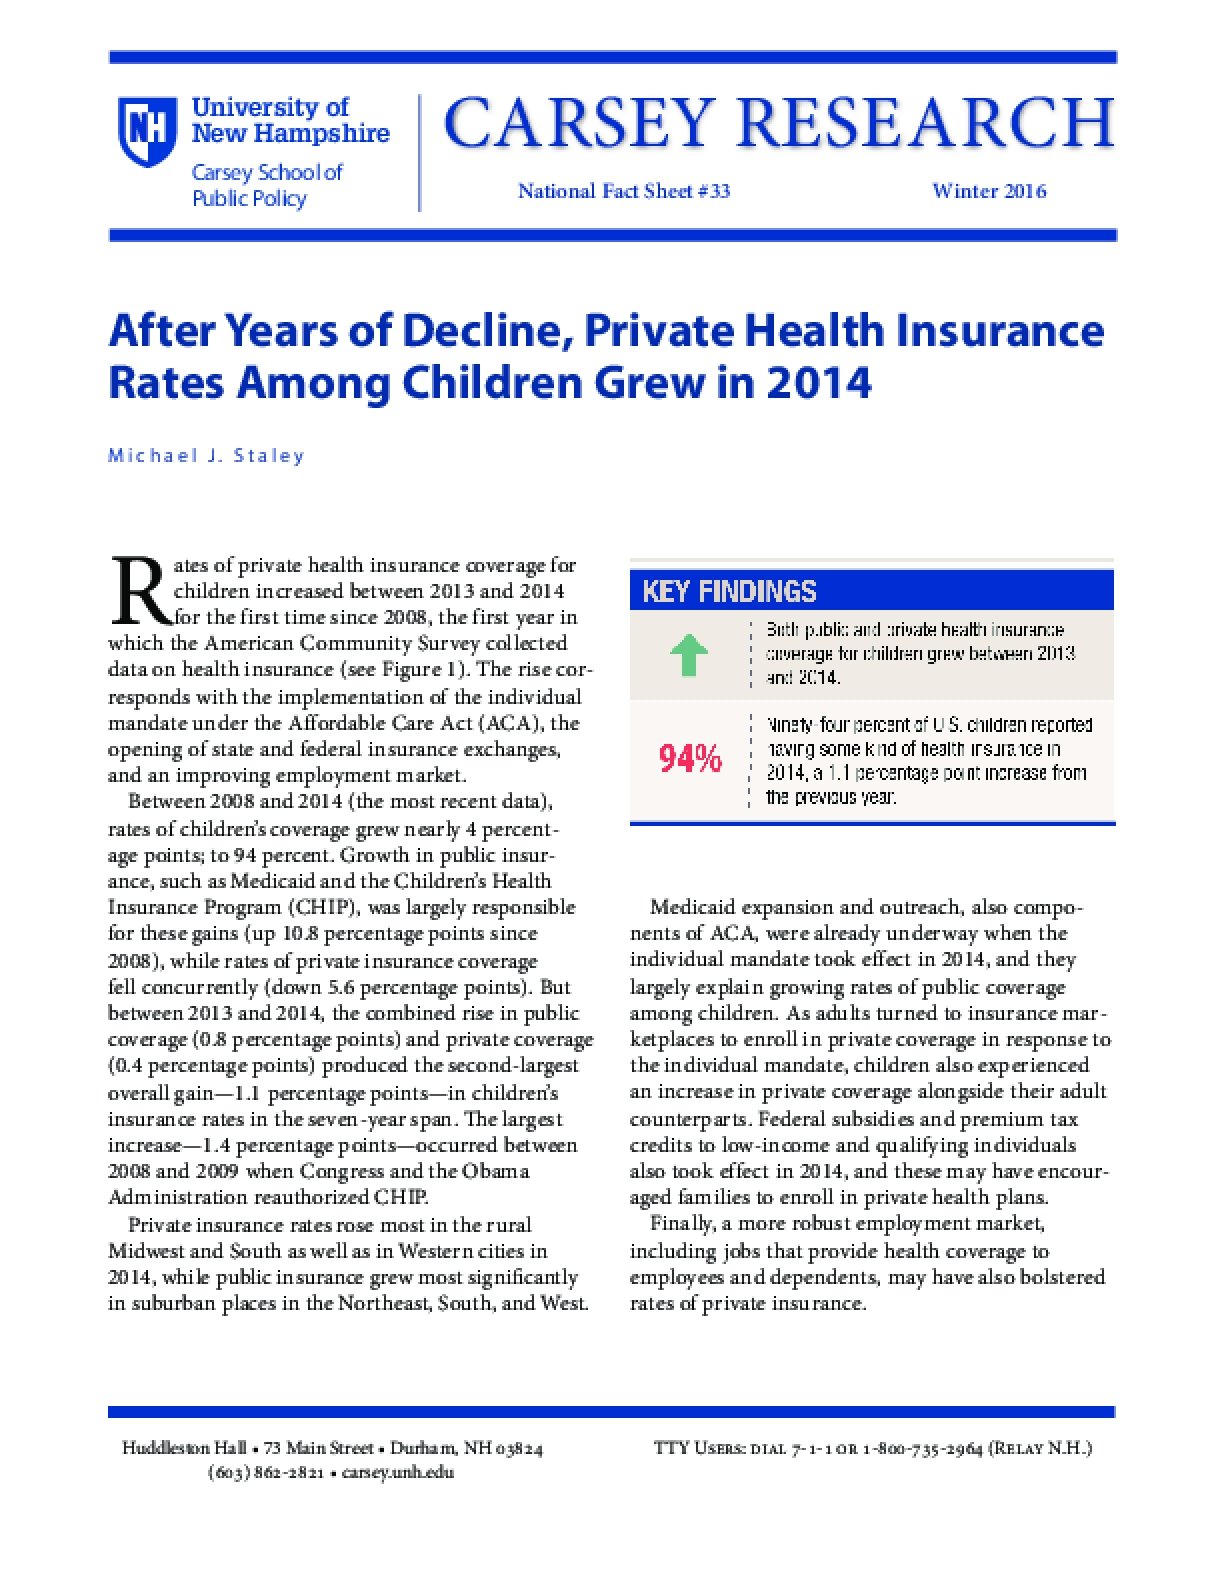 After Years of Decline, Private Health Insurance Rates Among Children Grew in 2014